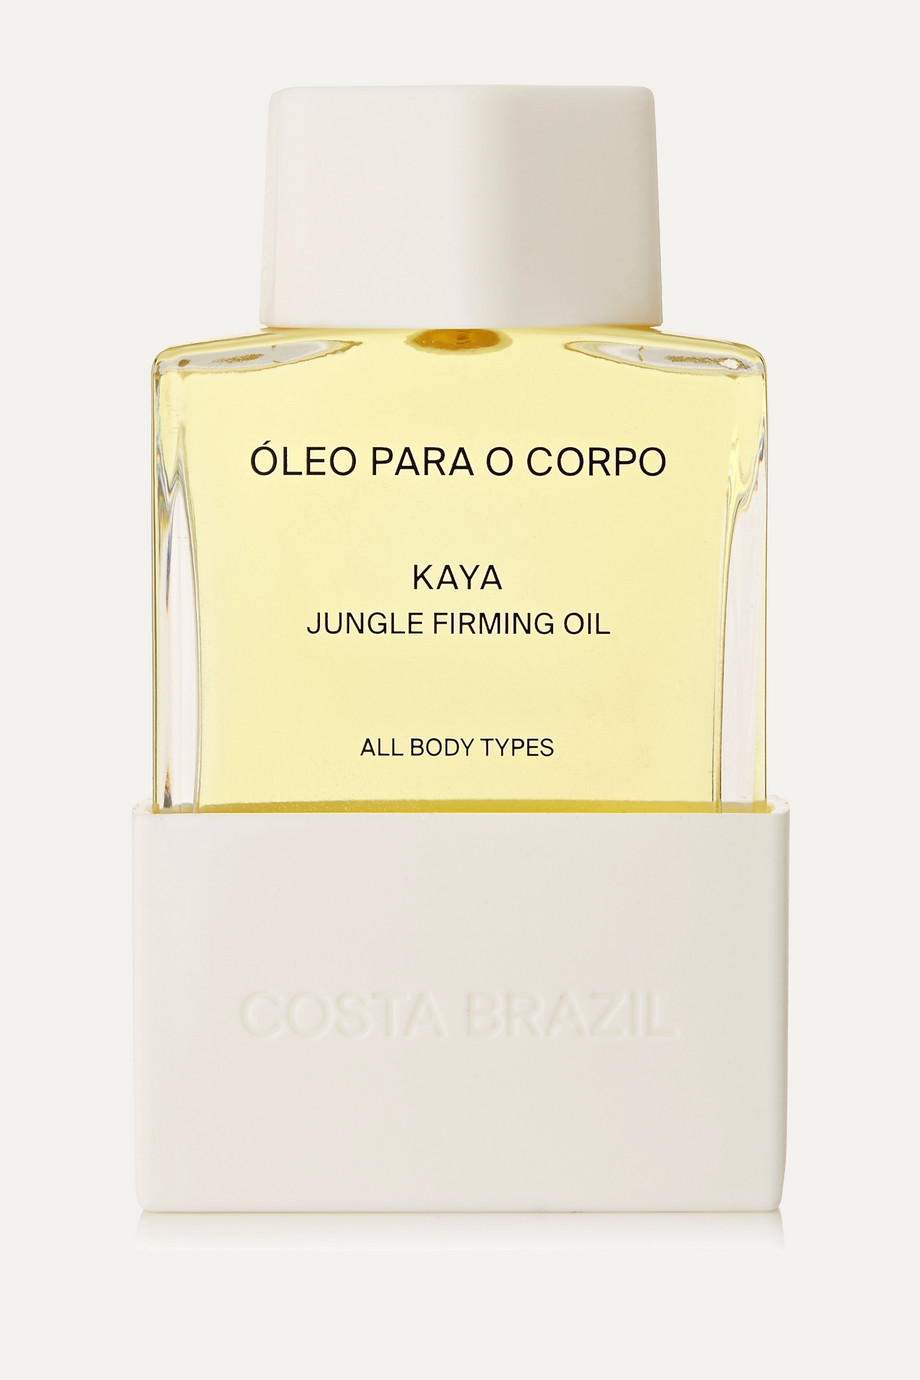 Costa Brazil Kaya Jungle Firming Body Oil, 30ml